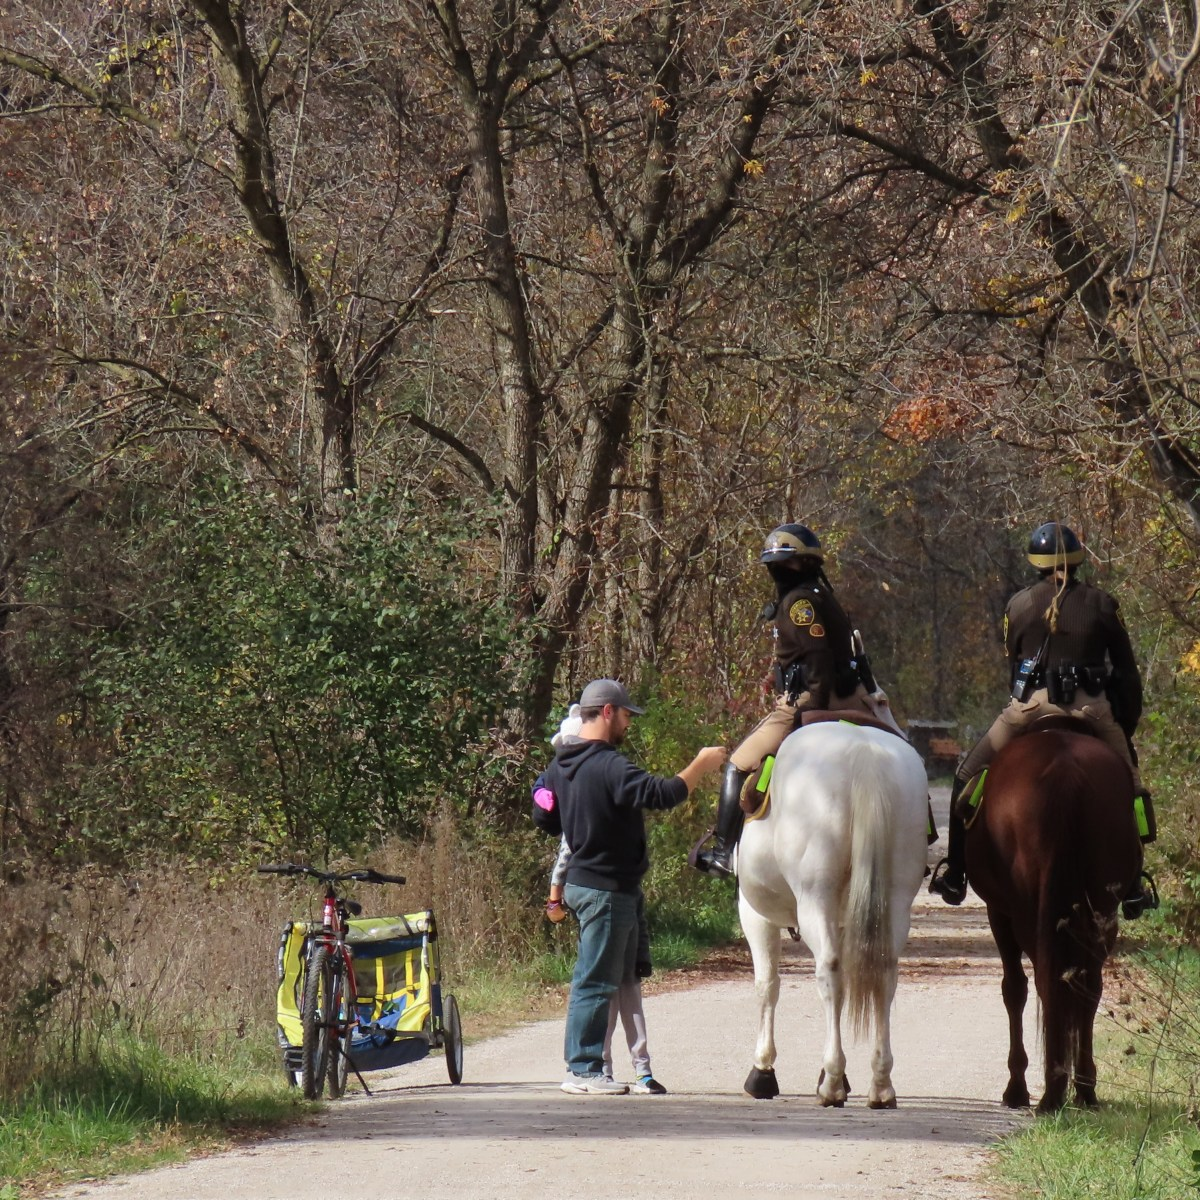 A man and his children stop on a trail to speak to two deputies on horseback